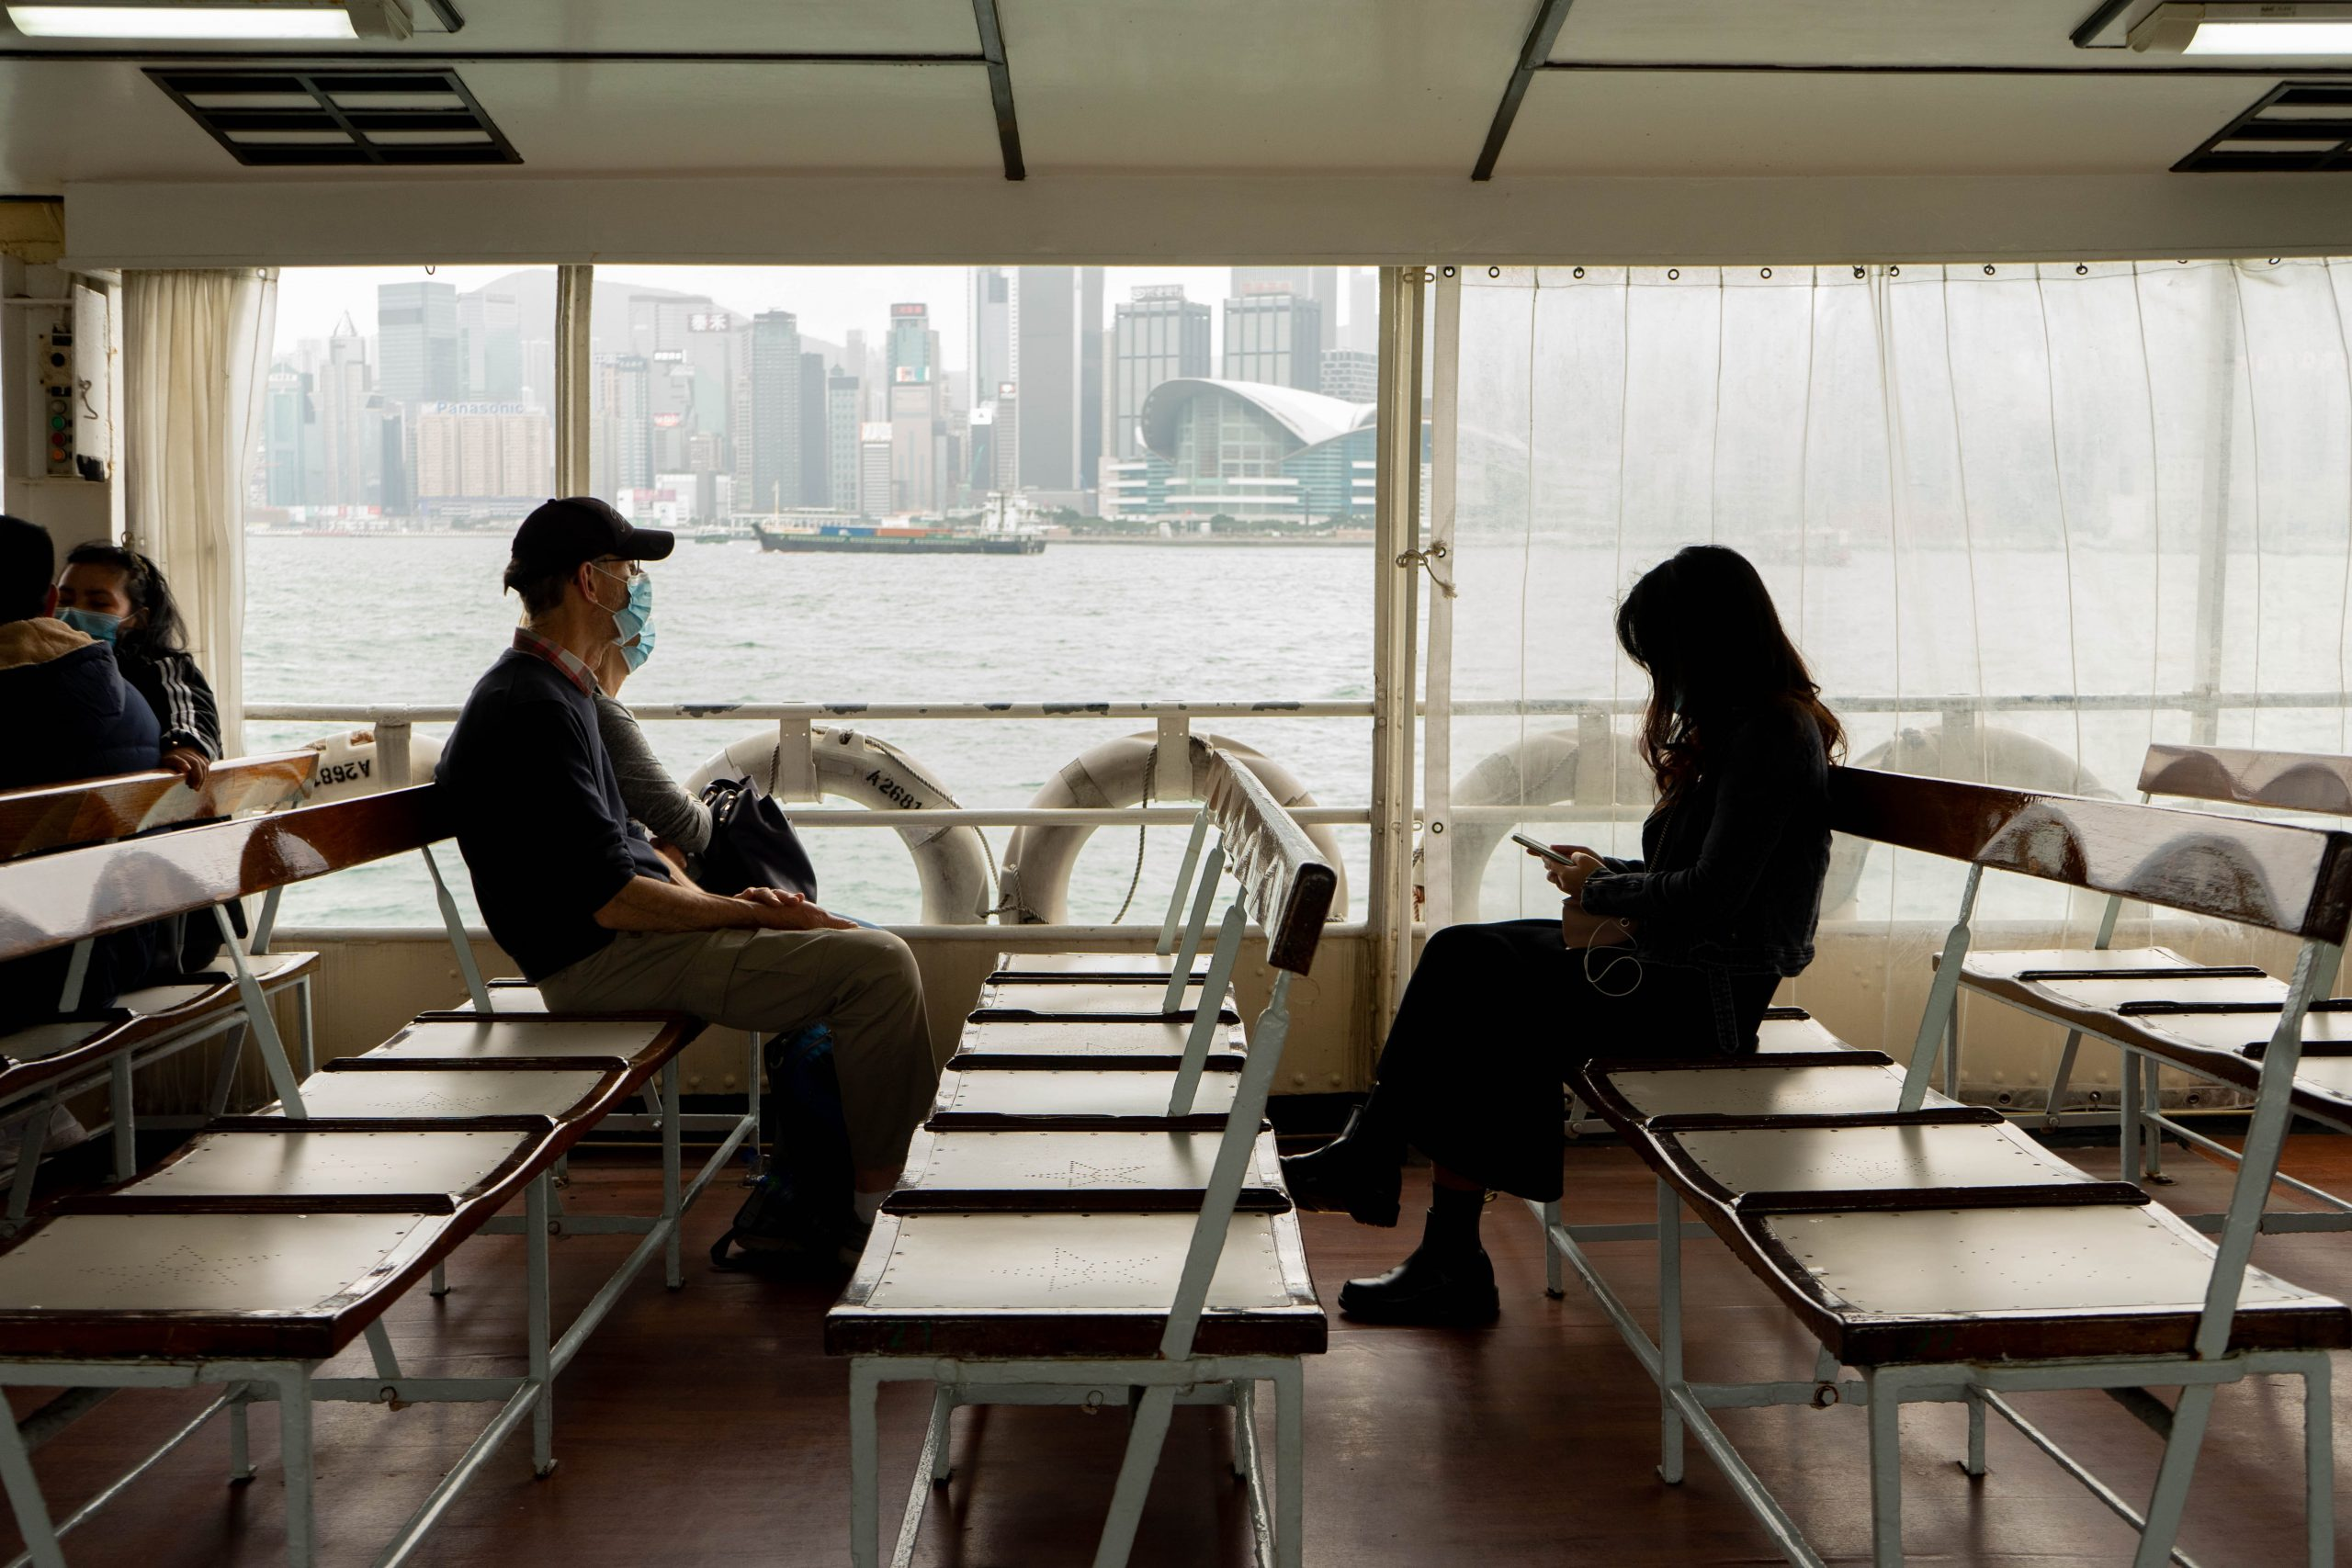 People wear masks and maintain physical distance while riding a ferry. Photo by Big Dodzy.